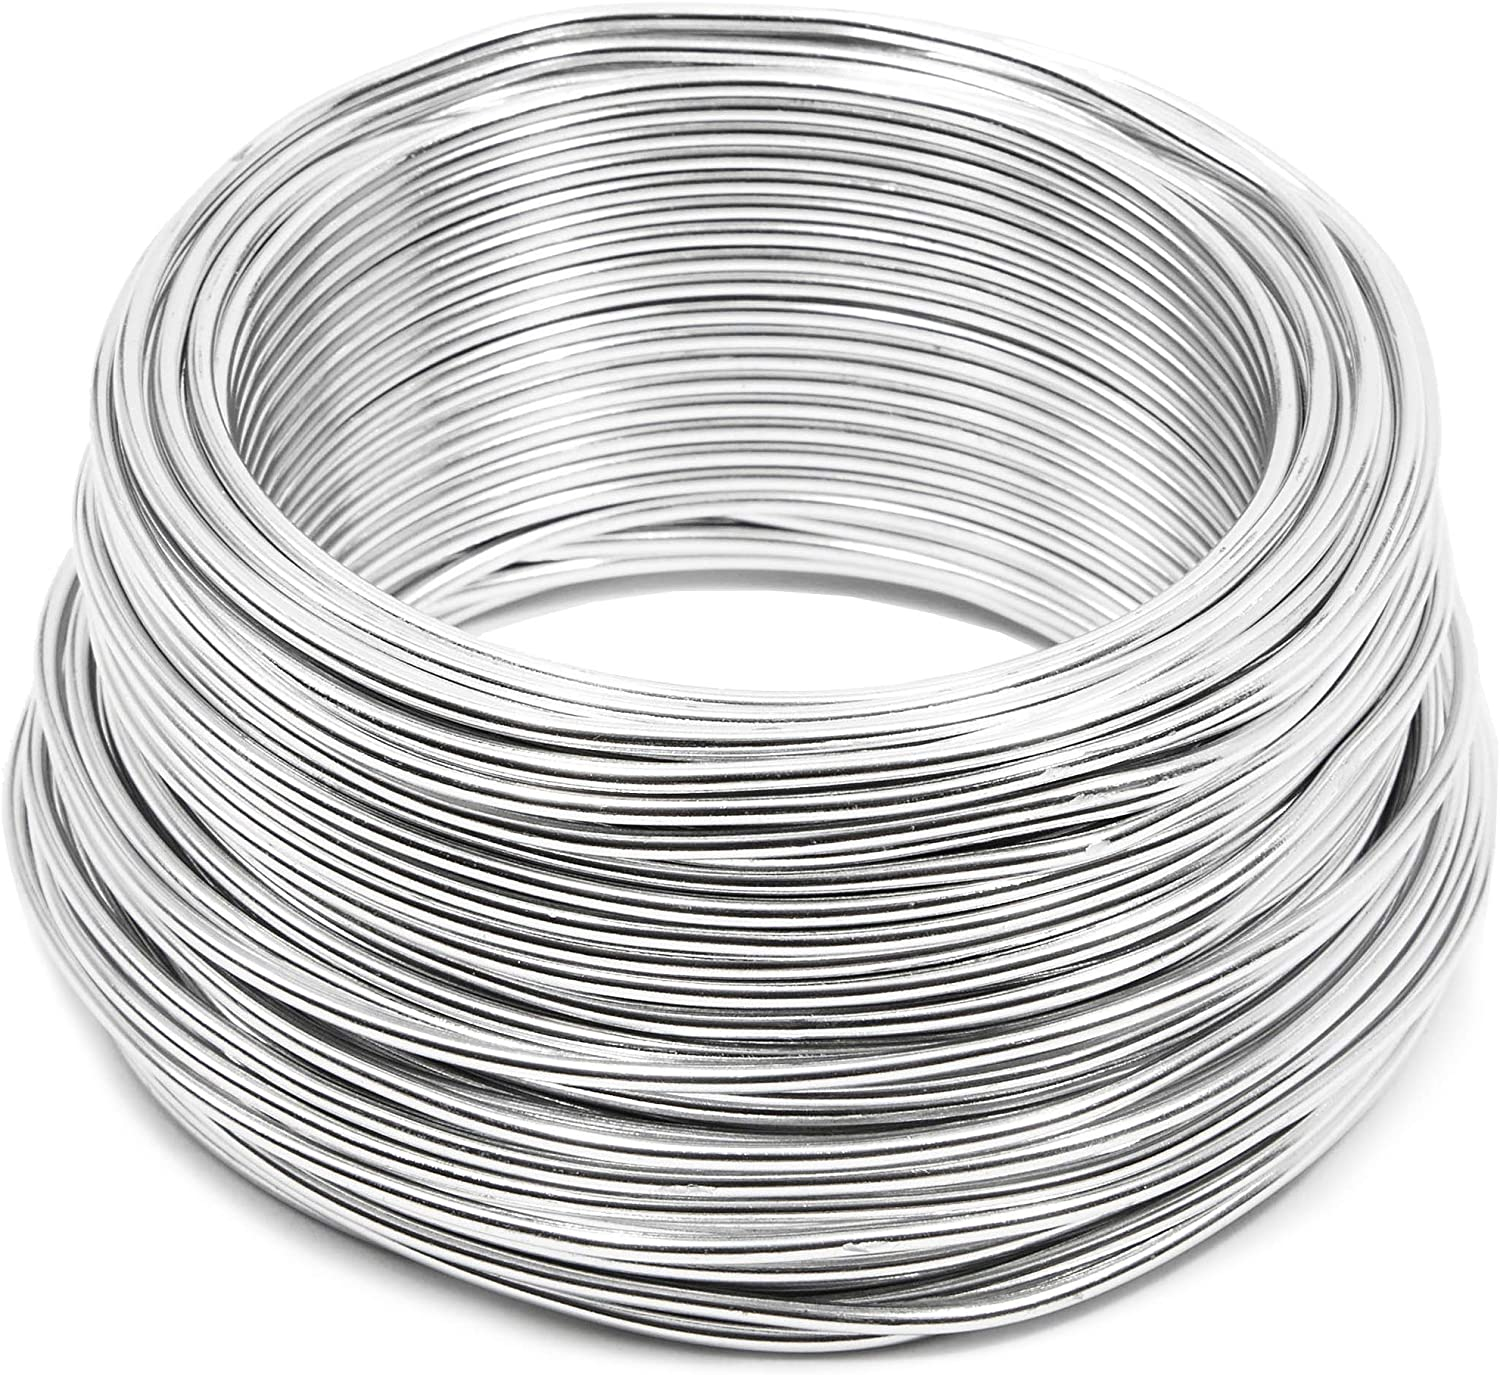 Bright Creations Aluminum Wire for DIY Crafts Silver 12 Gauge 101 Feet